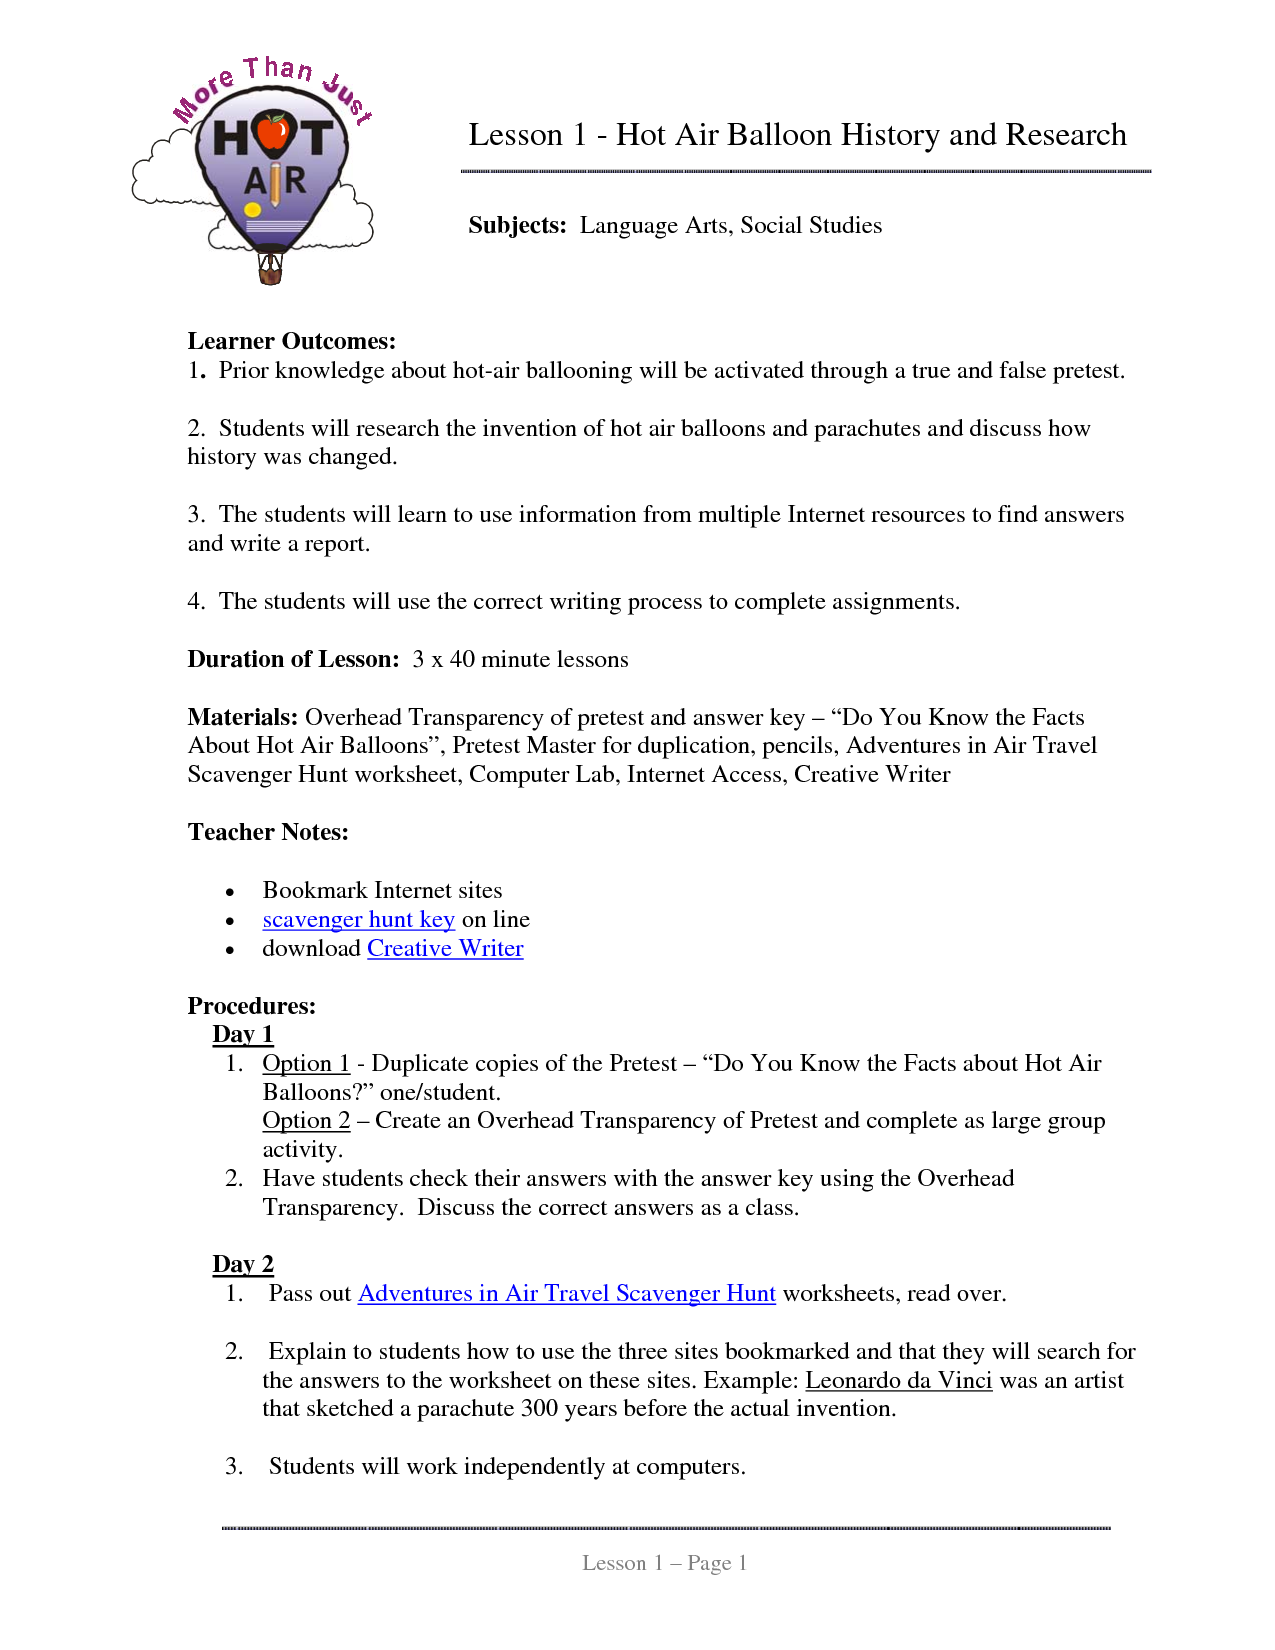 medium resolution of Lesson 1 - Hot Air Balloon History and Research   Hot air balloon